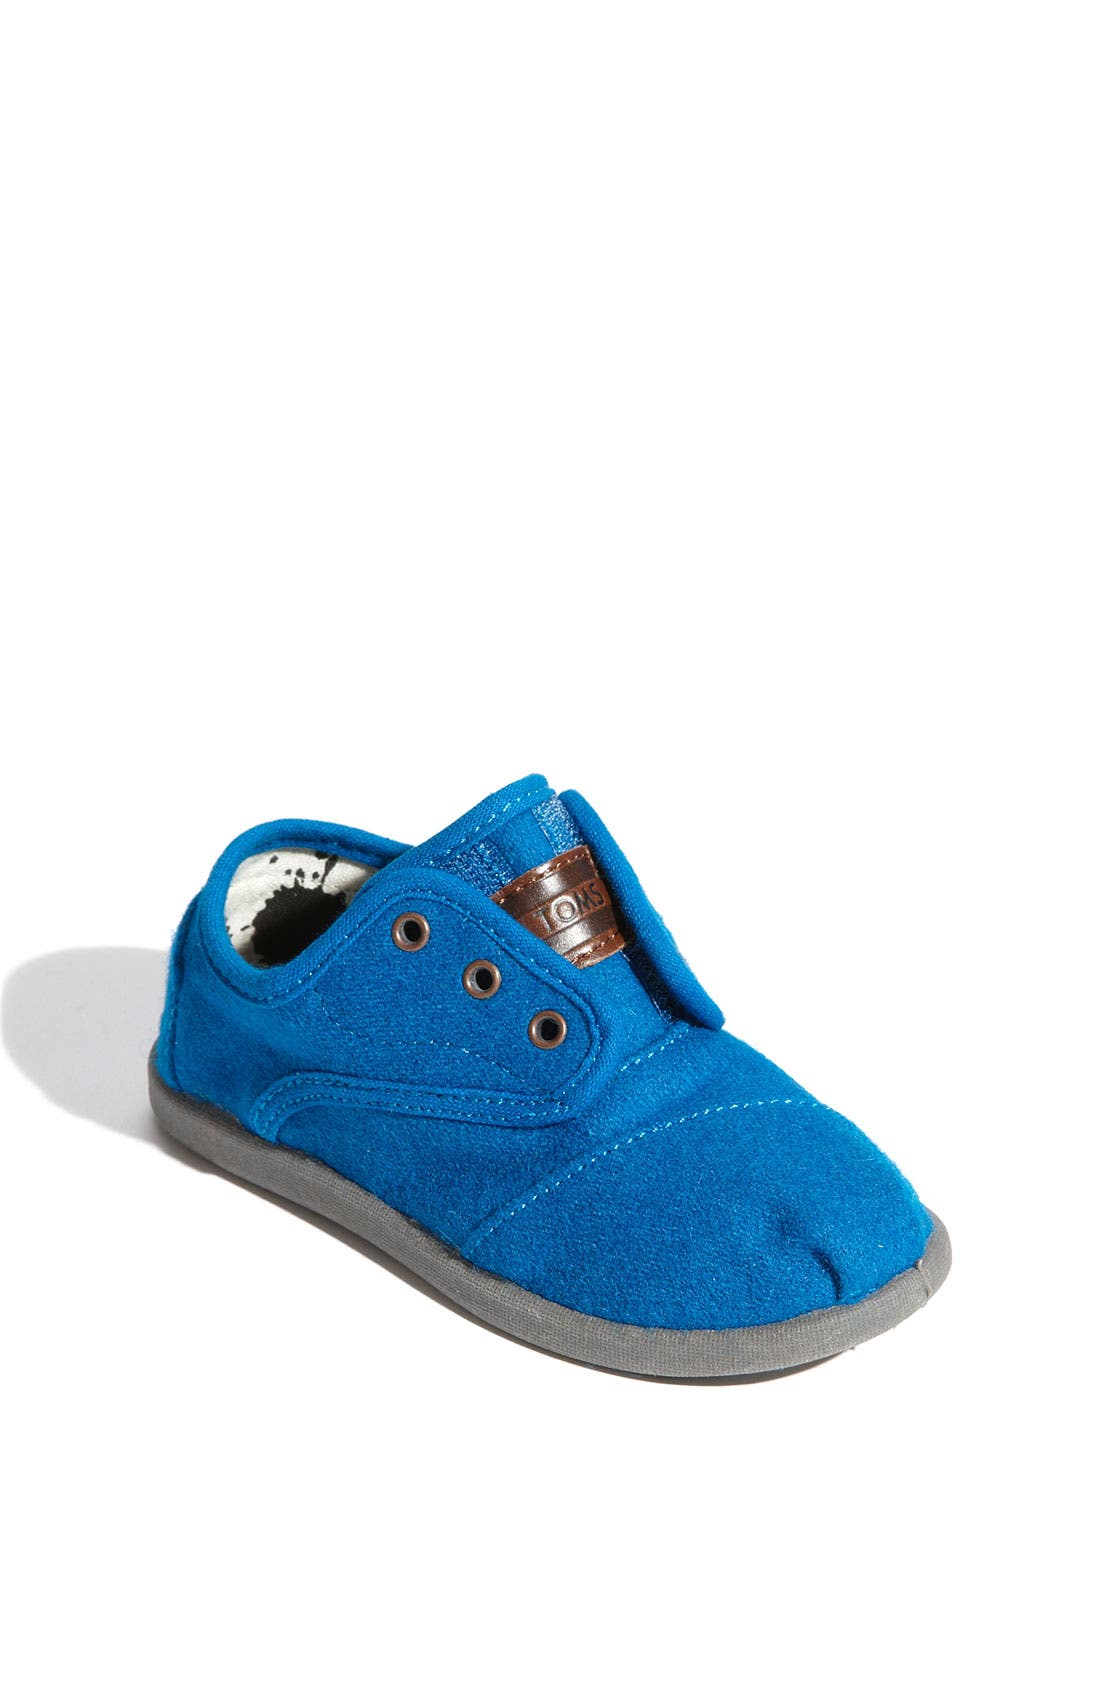 Alternate Image 1 Selected - TOMS 'Cordones - Tiny' Woolen Slip-On Sneaker (Baby, Walker & Toddler)